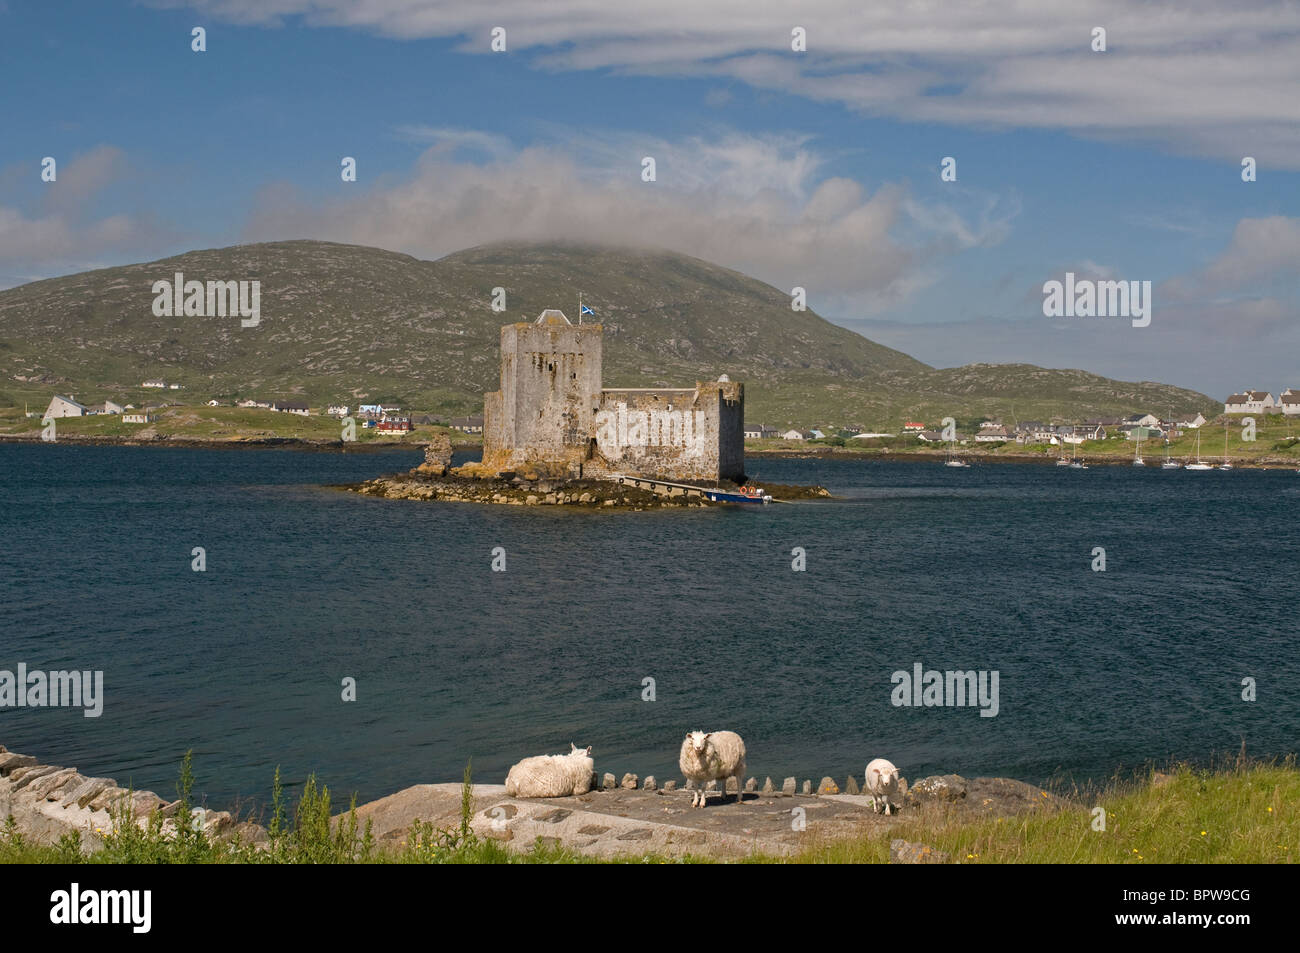 Kisimul Castle sits in Castlebay on the Island of Barra, Outer Hebrides Western Isles. Scotland   SCO 6535 - Stock Image